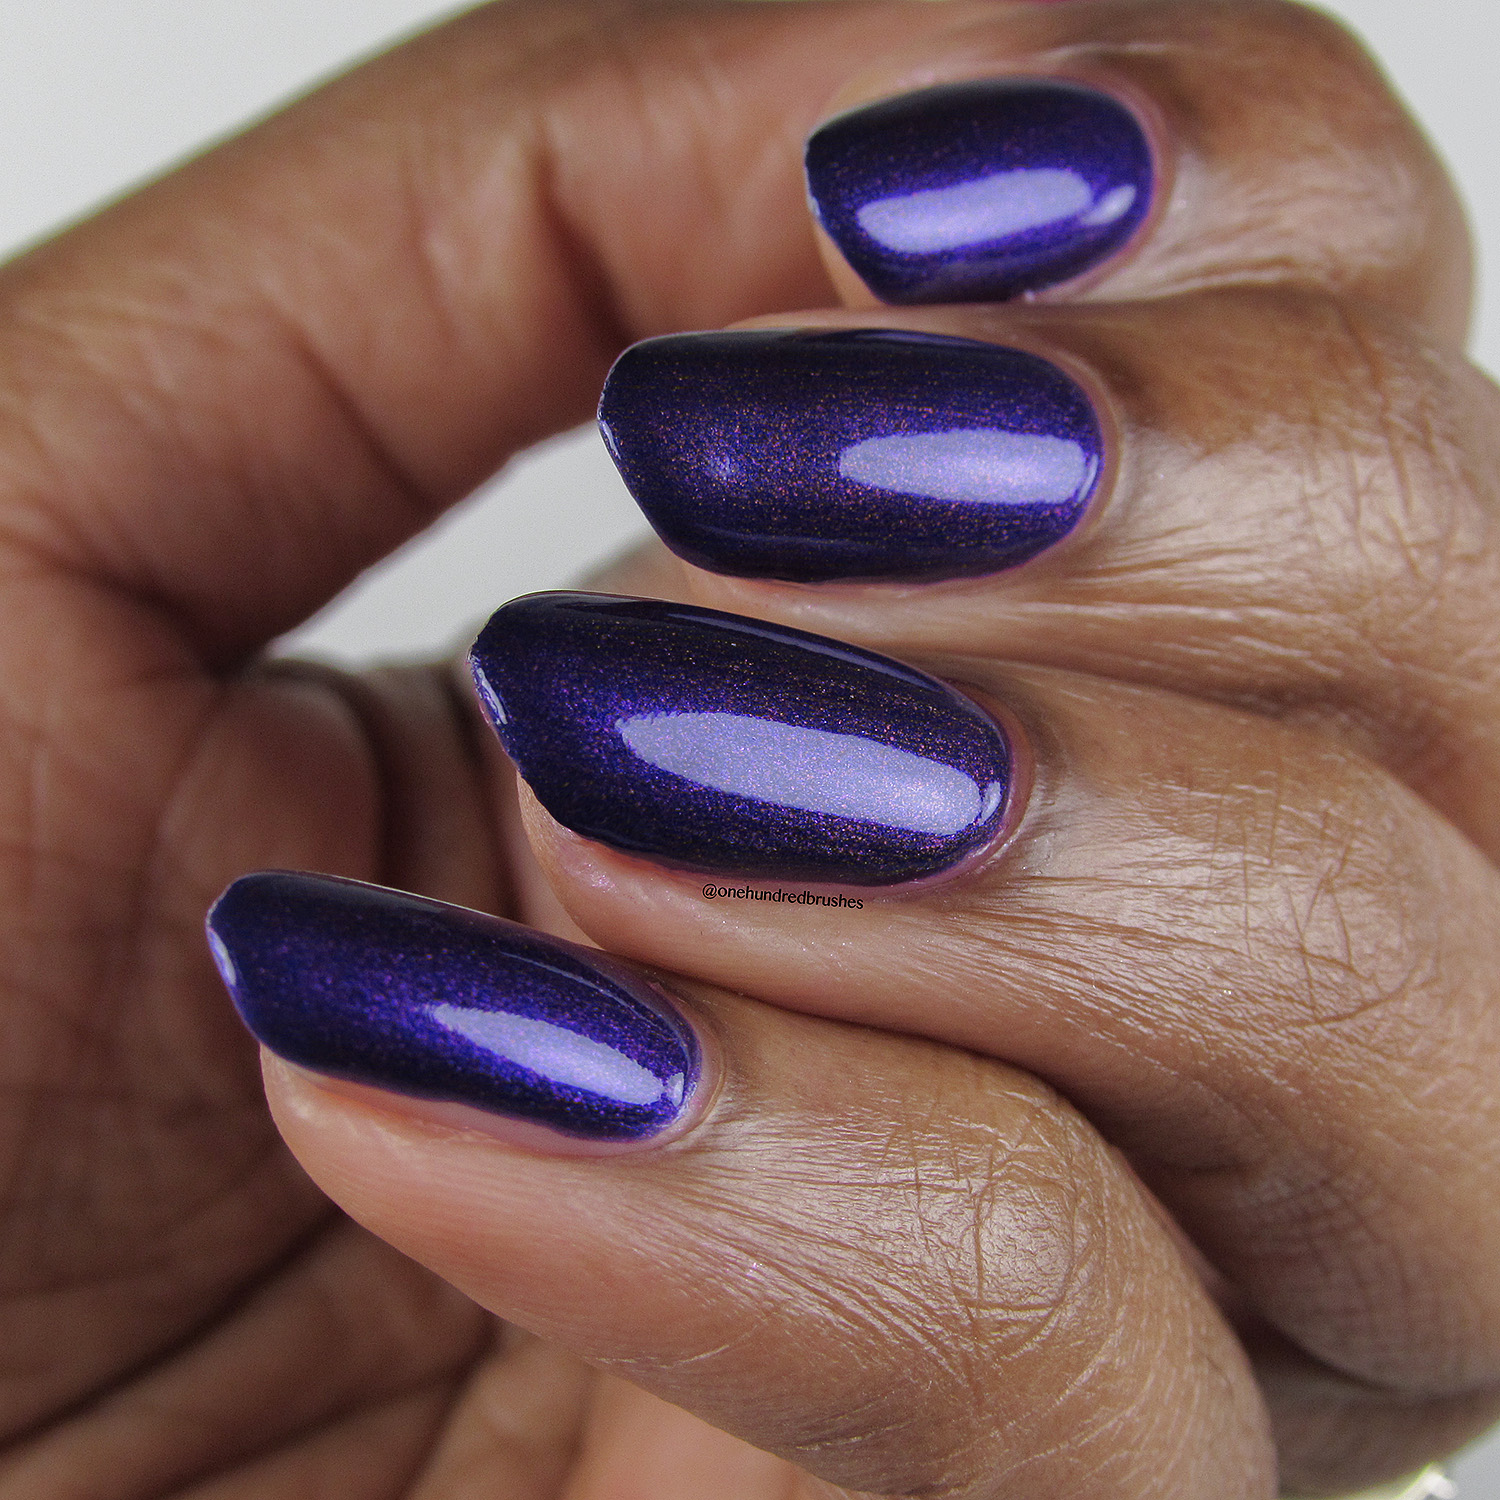 Concord - angle - Vapid Lacquer - April 2018 - Spring release - purple - pink shimmer